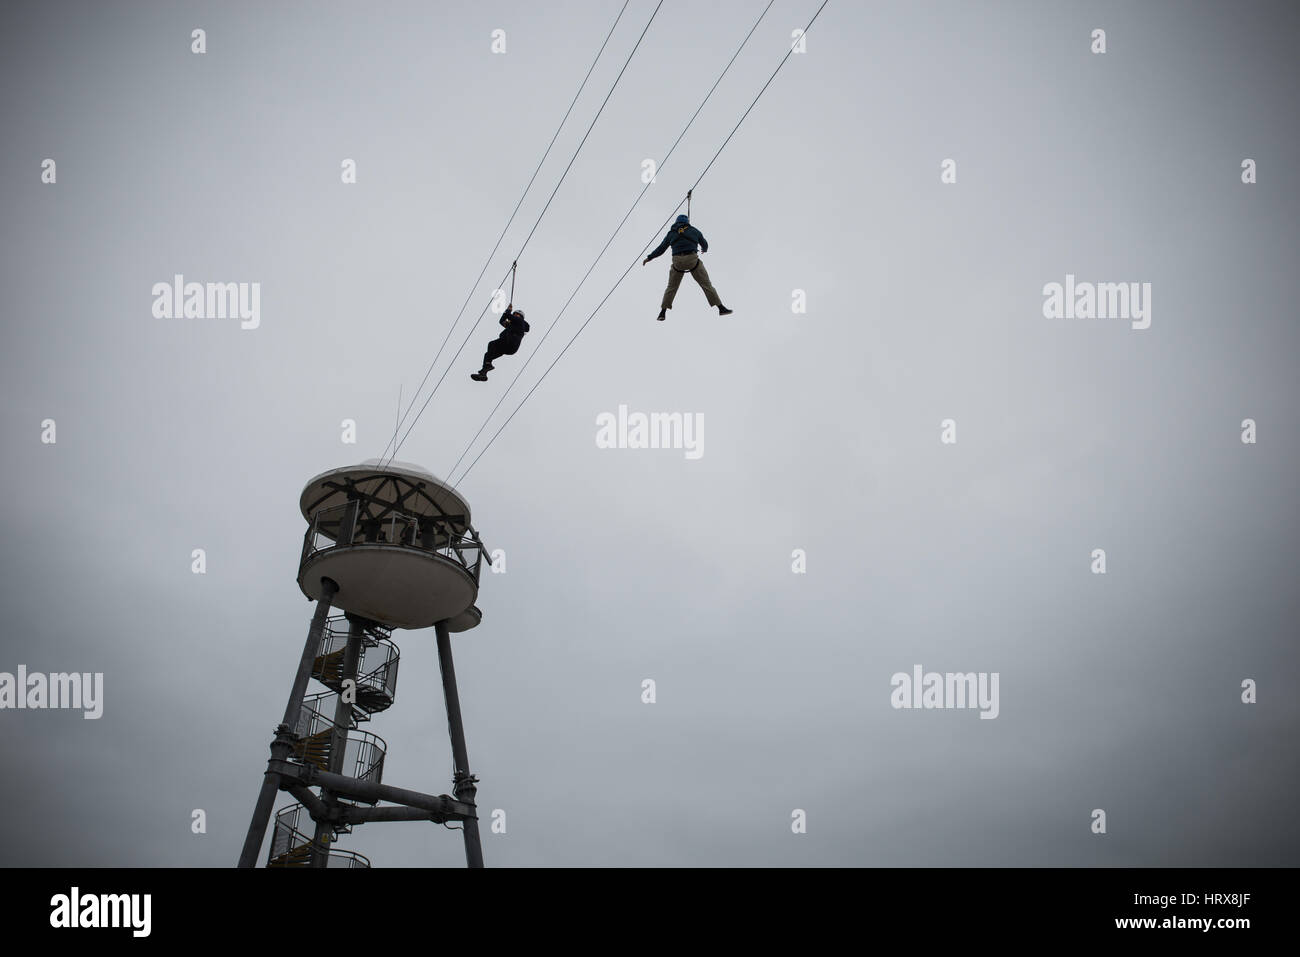 Zip Line Cable Stock Photos & Zip Line Cable Stock Images - Alamy